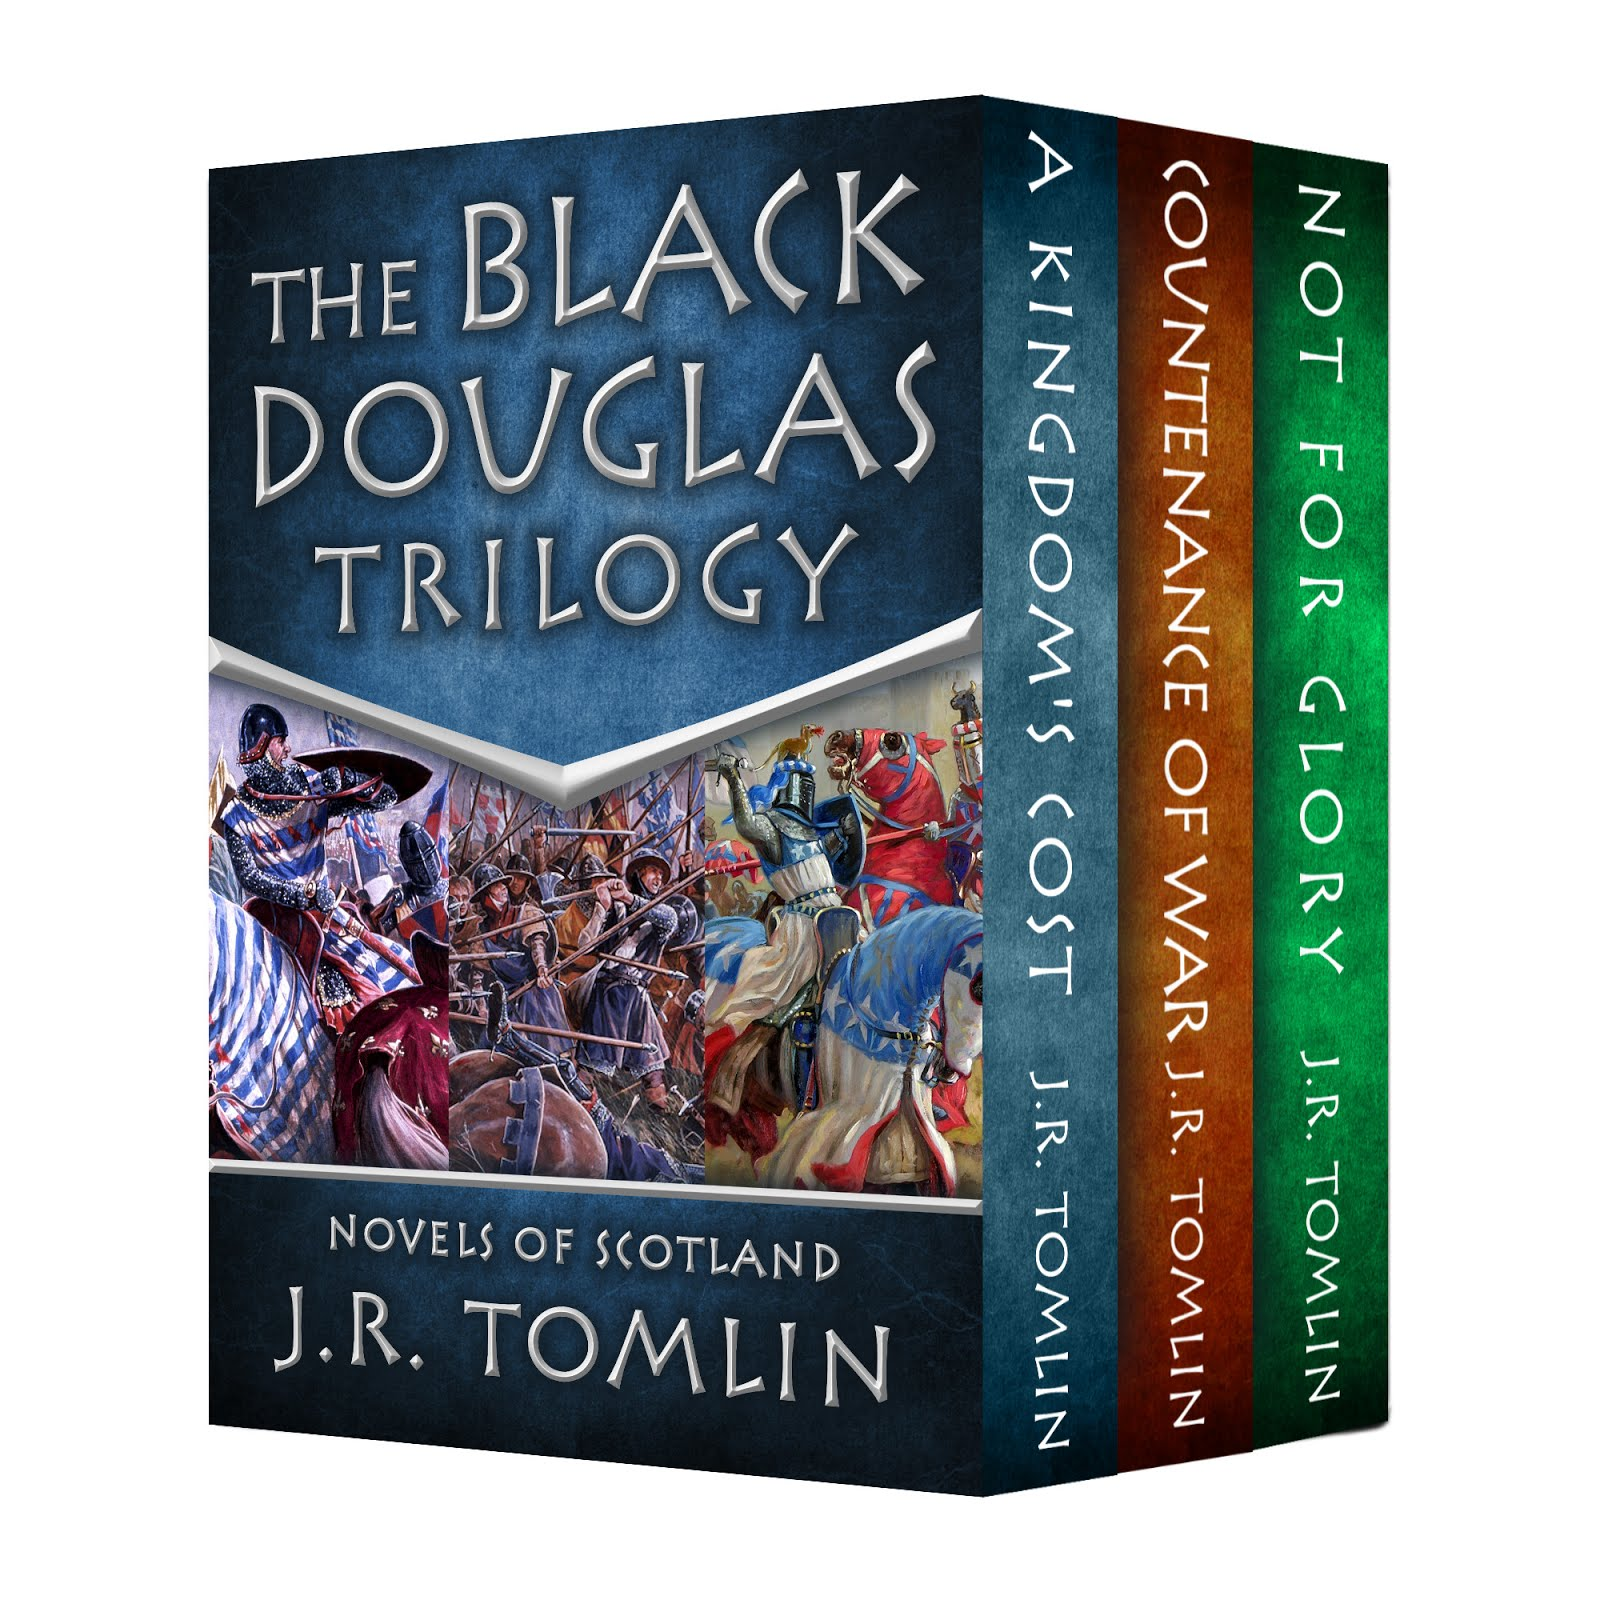 The Black Douglas Trilogy